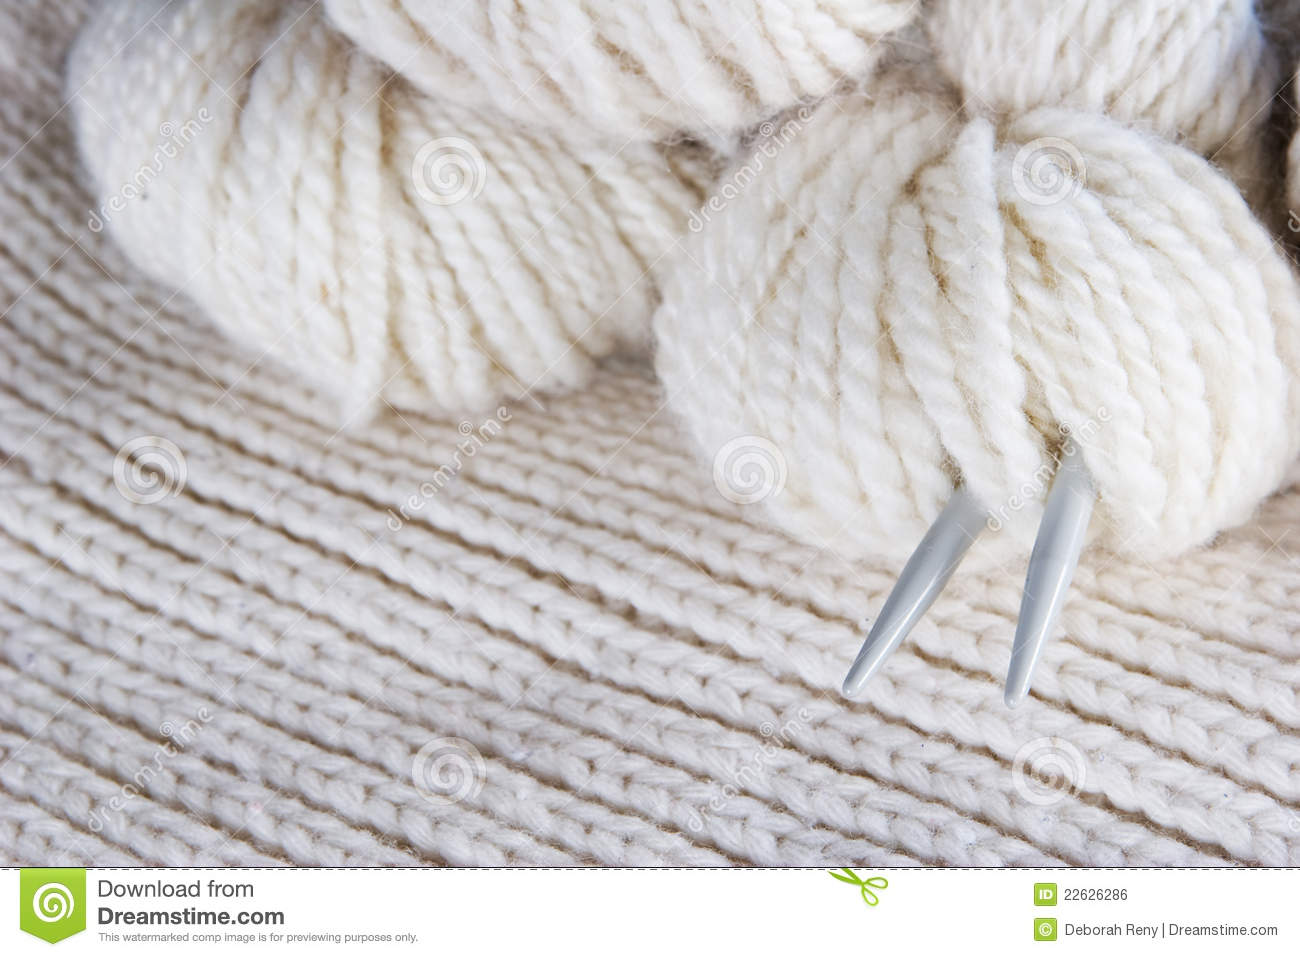 Knitting Wallpaper Free : Knitting stock photos and images pictures